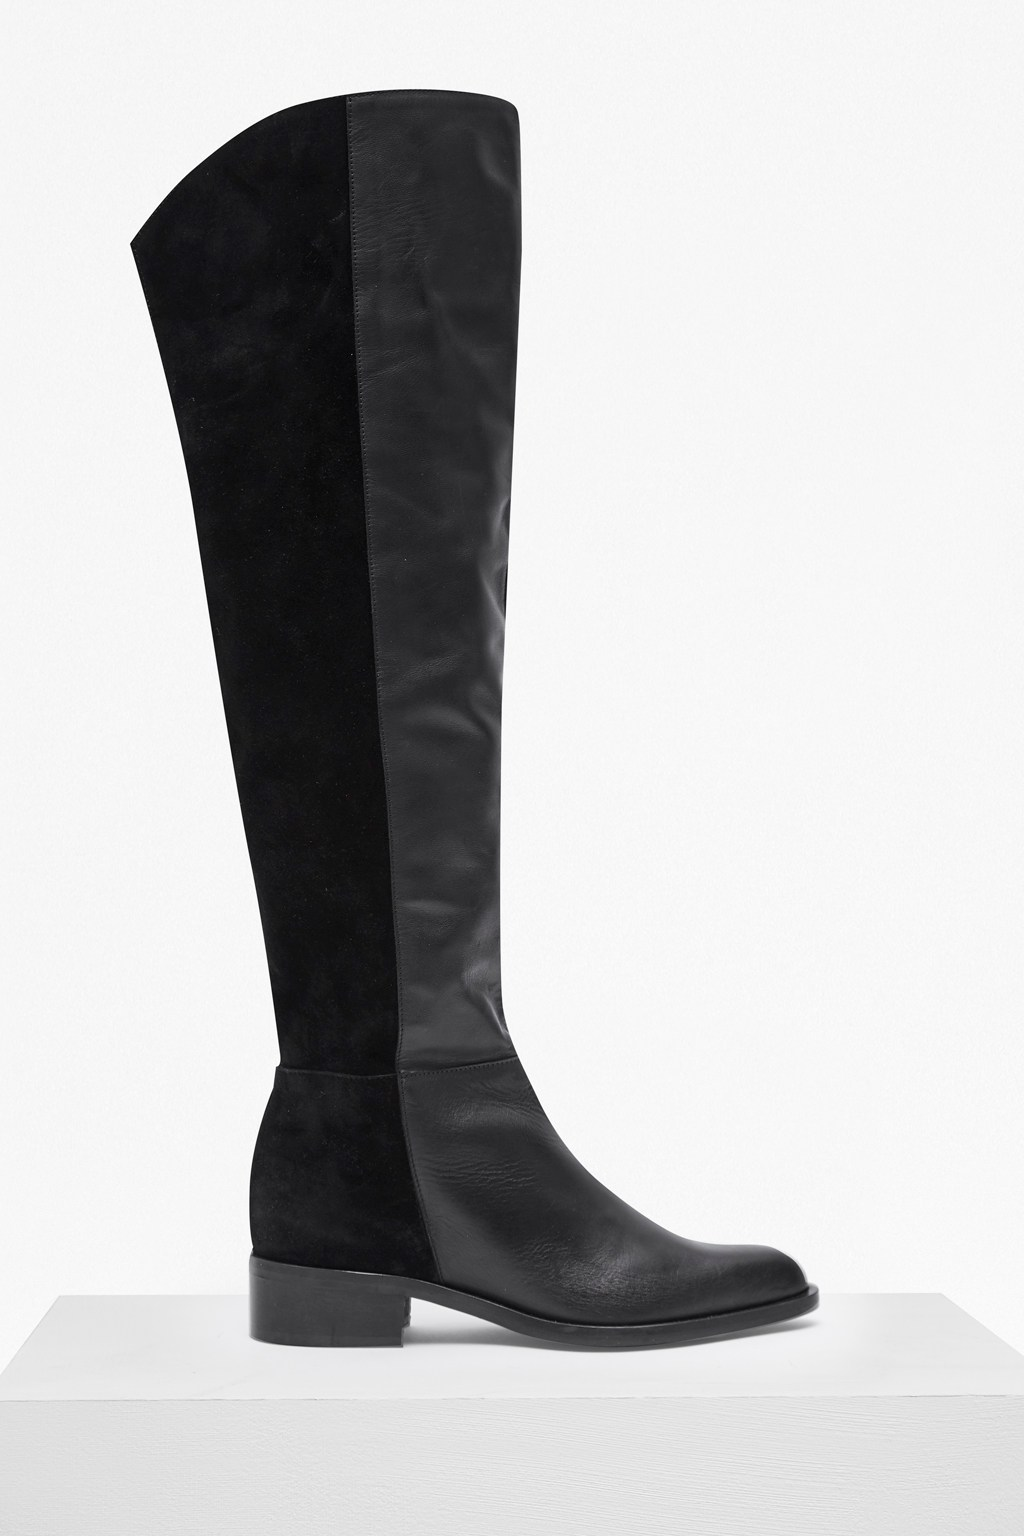 760a4a89d632 Tilly Knee High Flat Heel Leather Boots